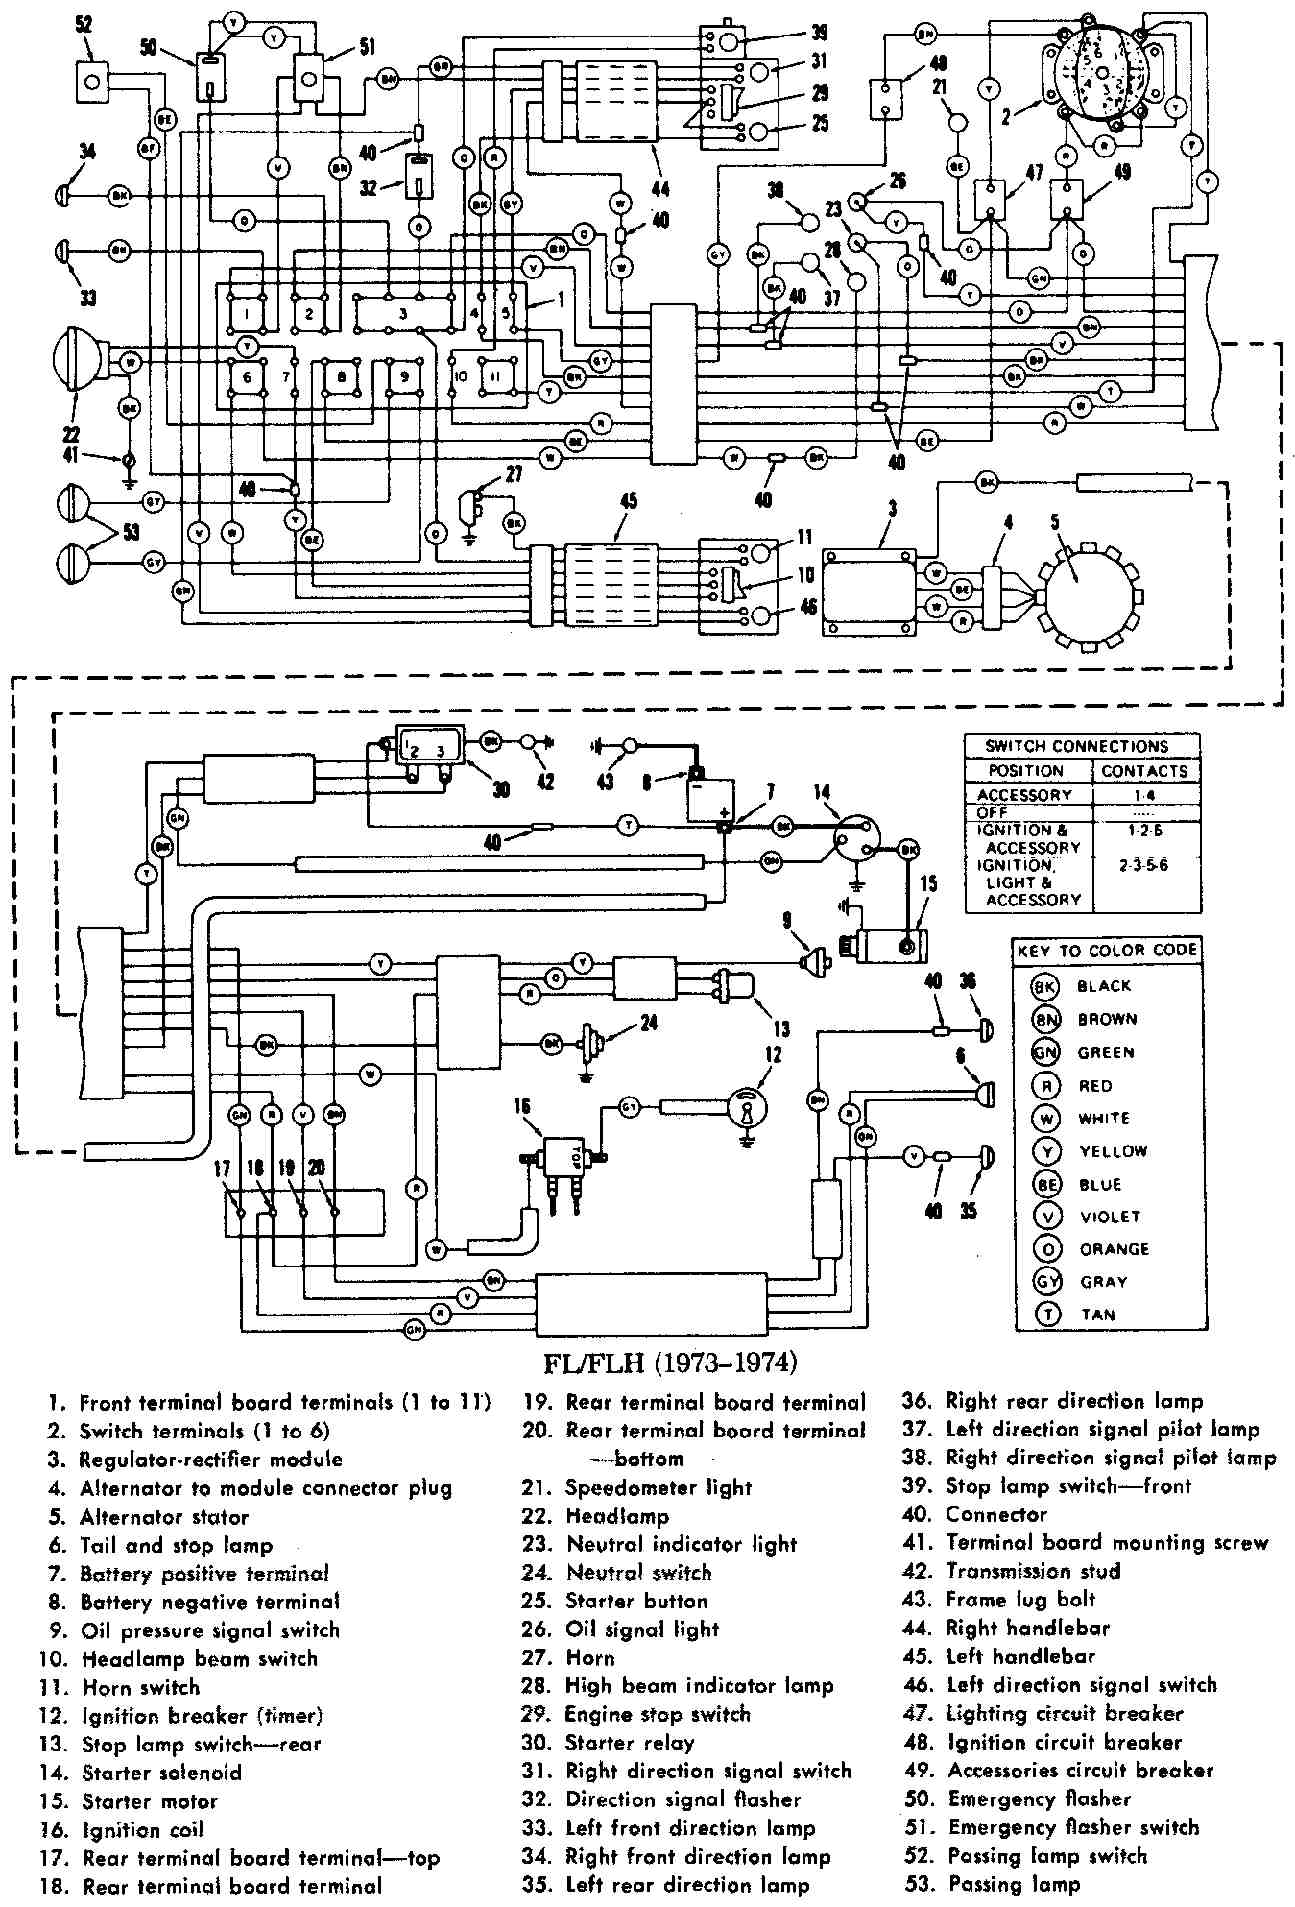 1968 amc amx starter wiring diagram pontiac fiero wiring diagram